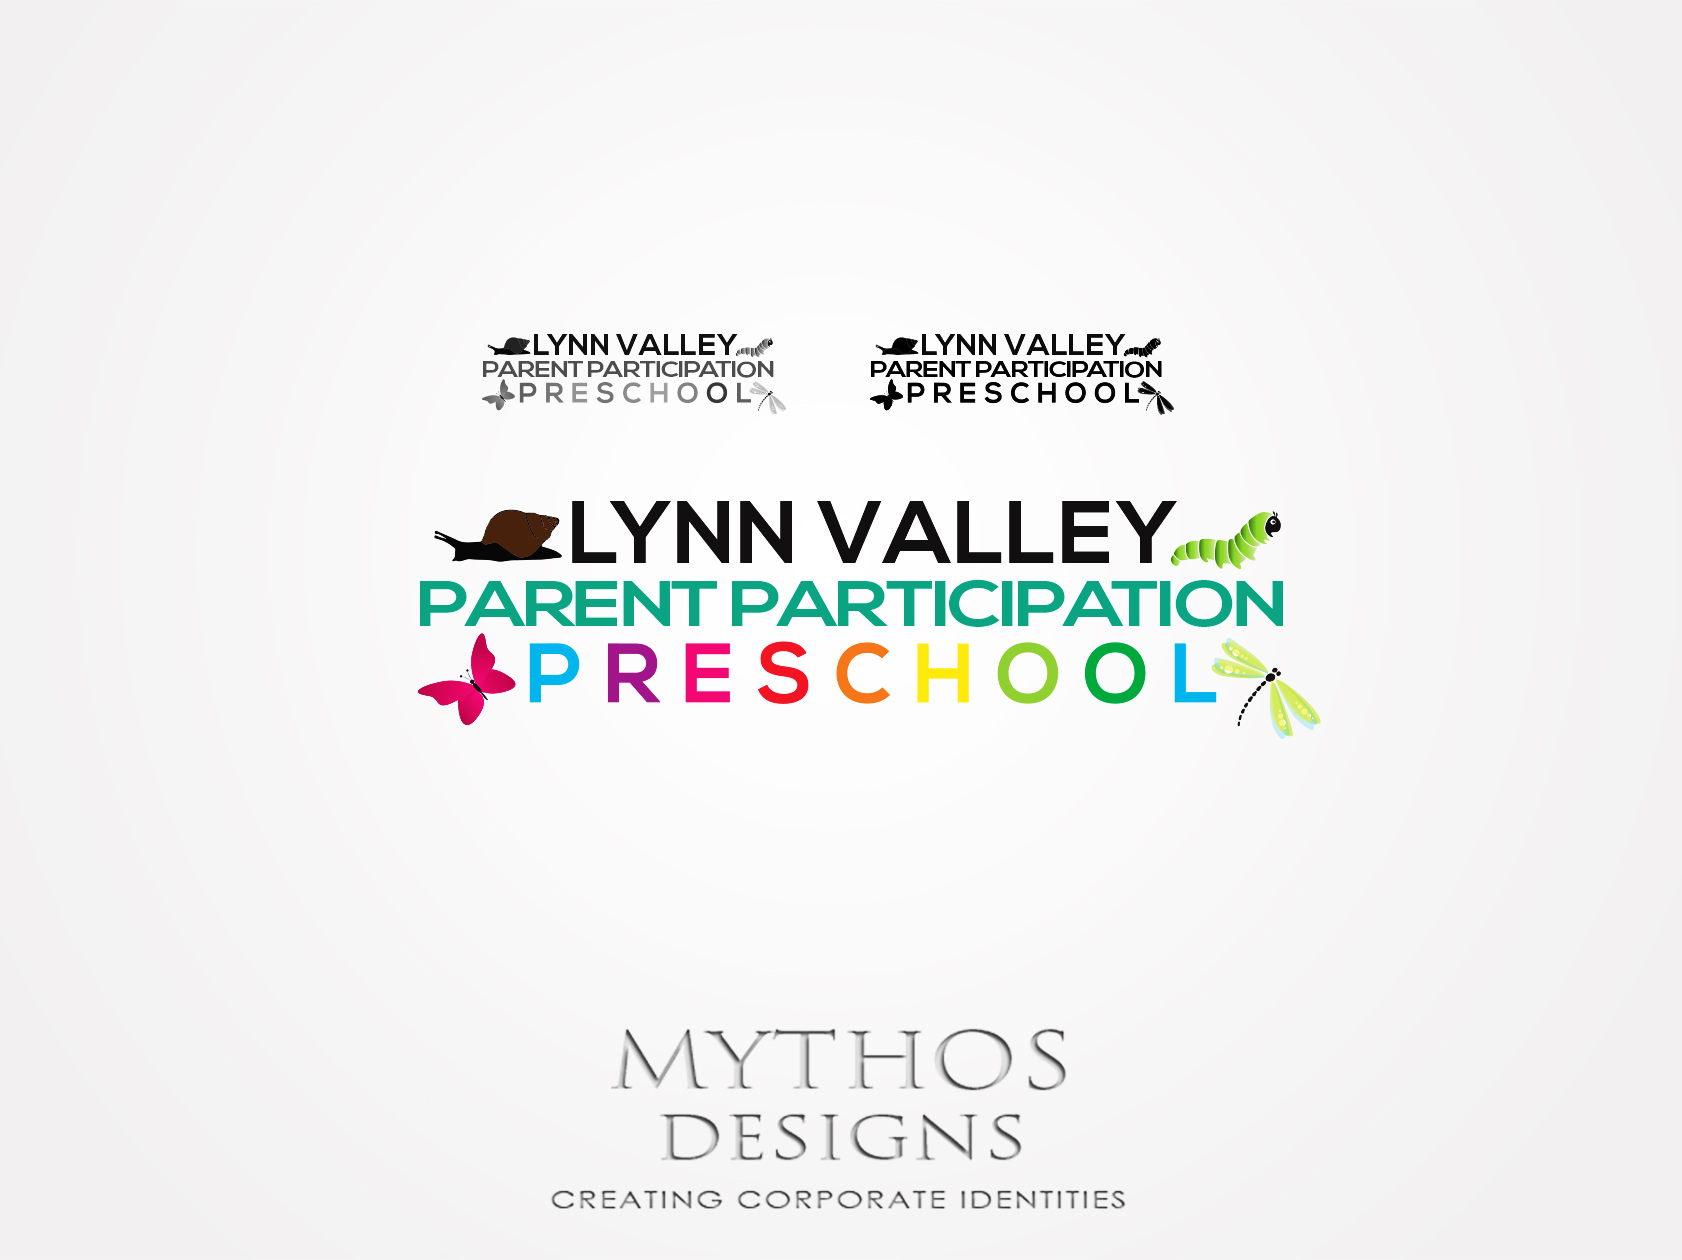 Logo Design by Mythos Designs - Entry No. 95 in the Logo Design Contest New Logo Design for Lynn Valley Parent Participation Preschool.